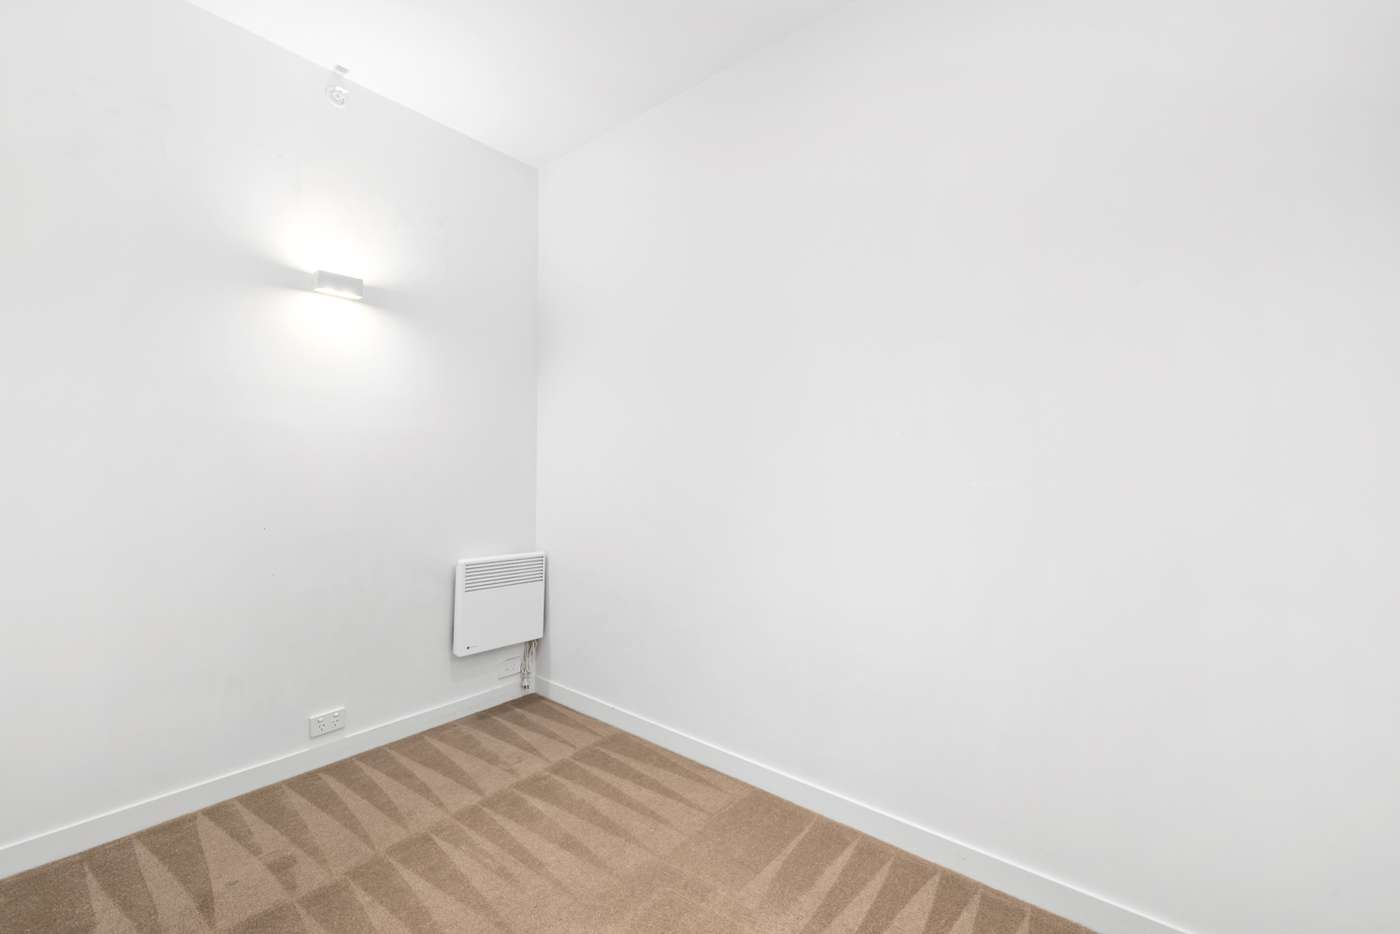 Sixth view of Homely apartment listing, 116/108 Flinders Street, Melbourne VIC 3000